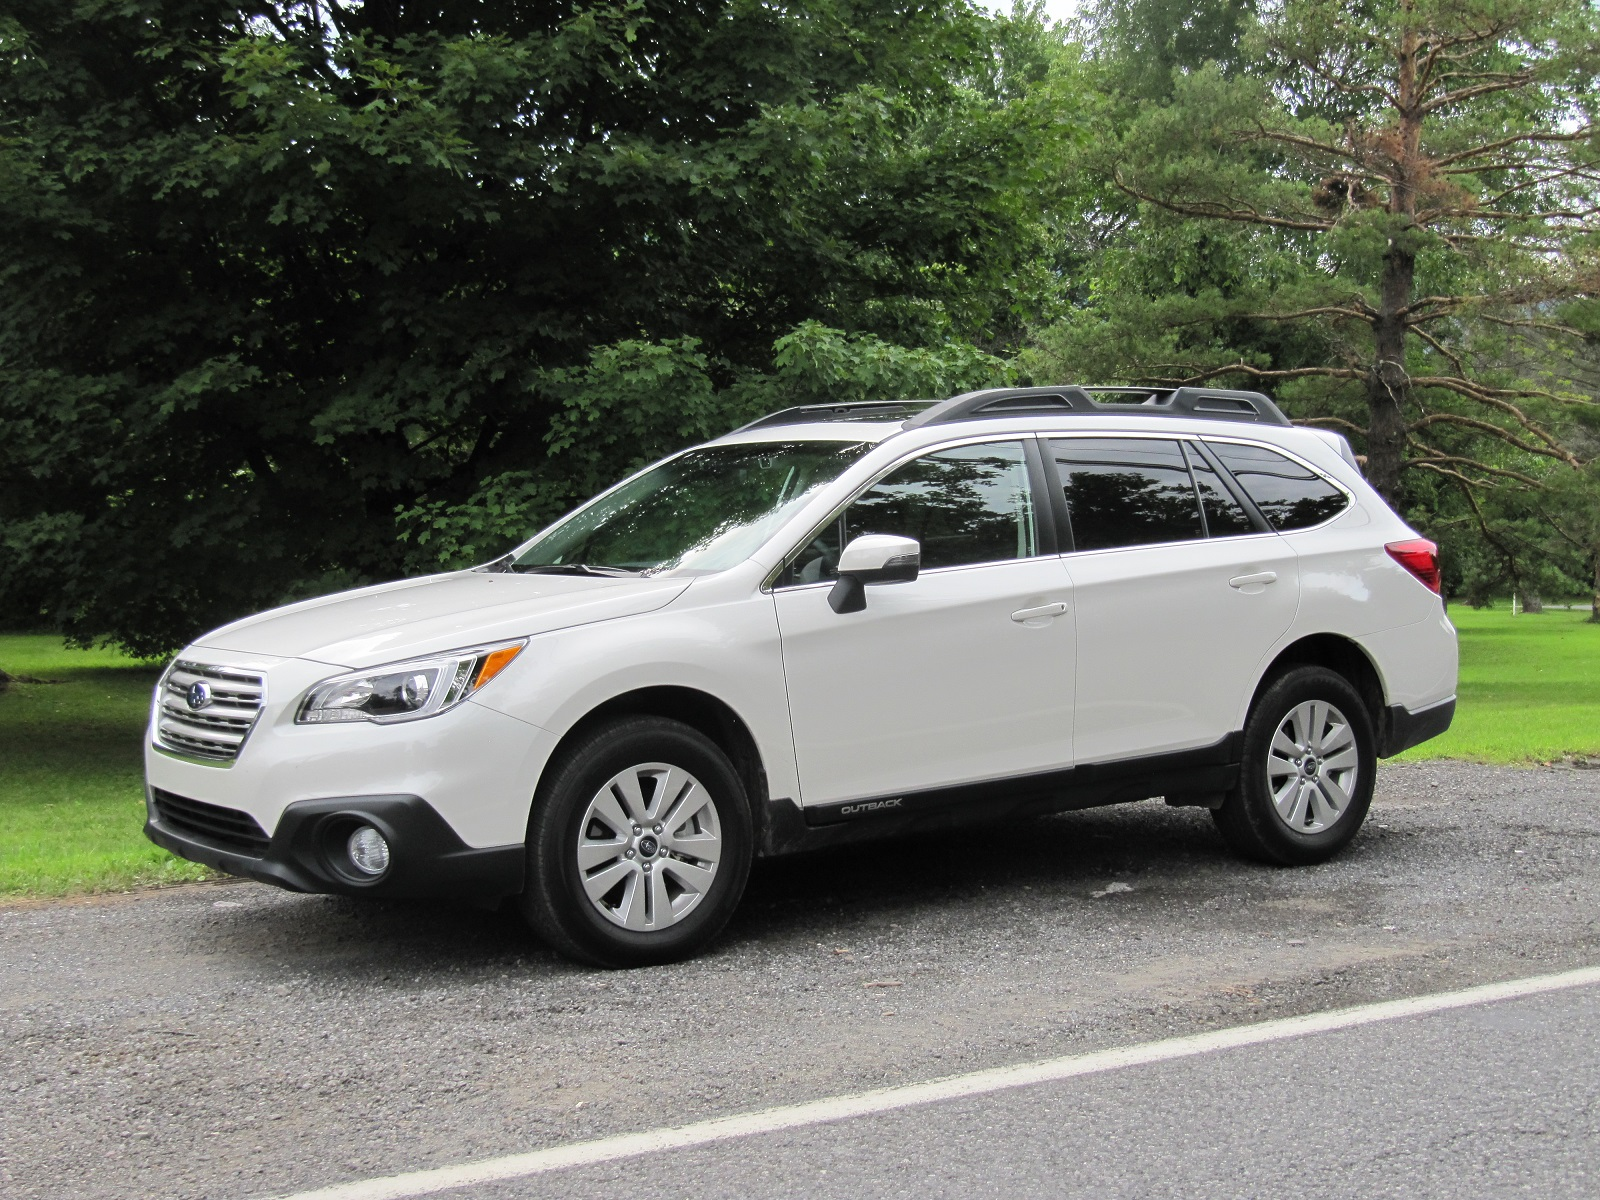 2015 Subaru Outback Gas Mileage Review Of Crossover Wagon